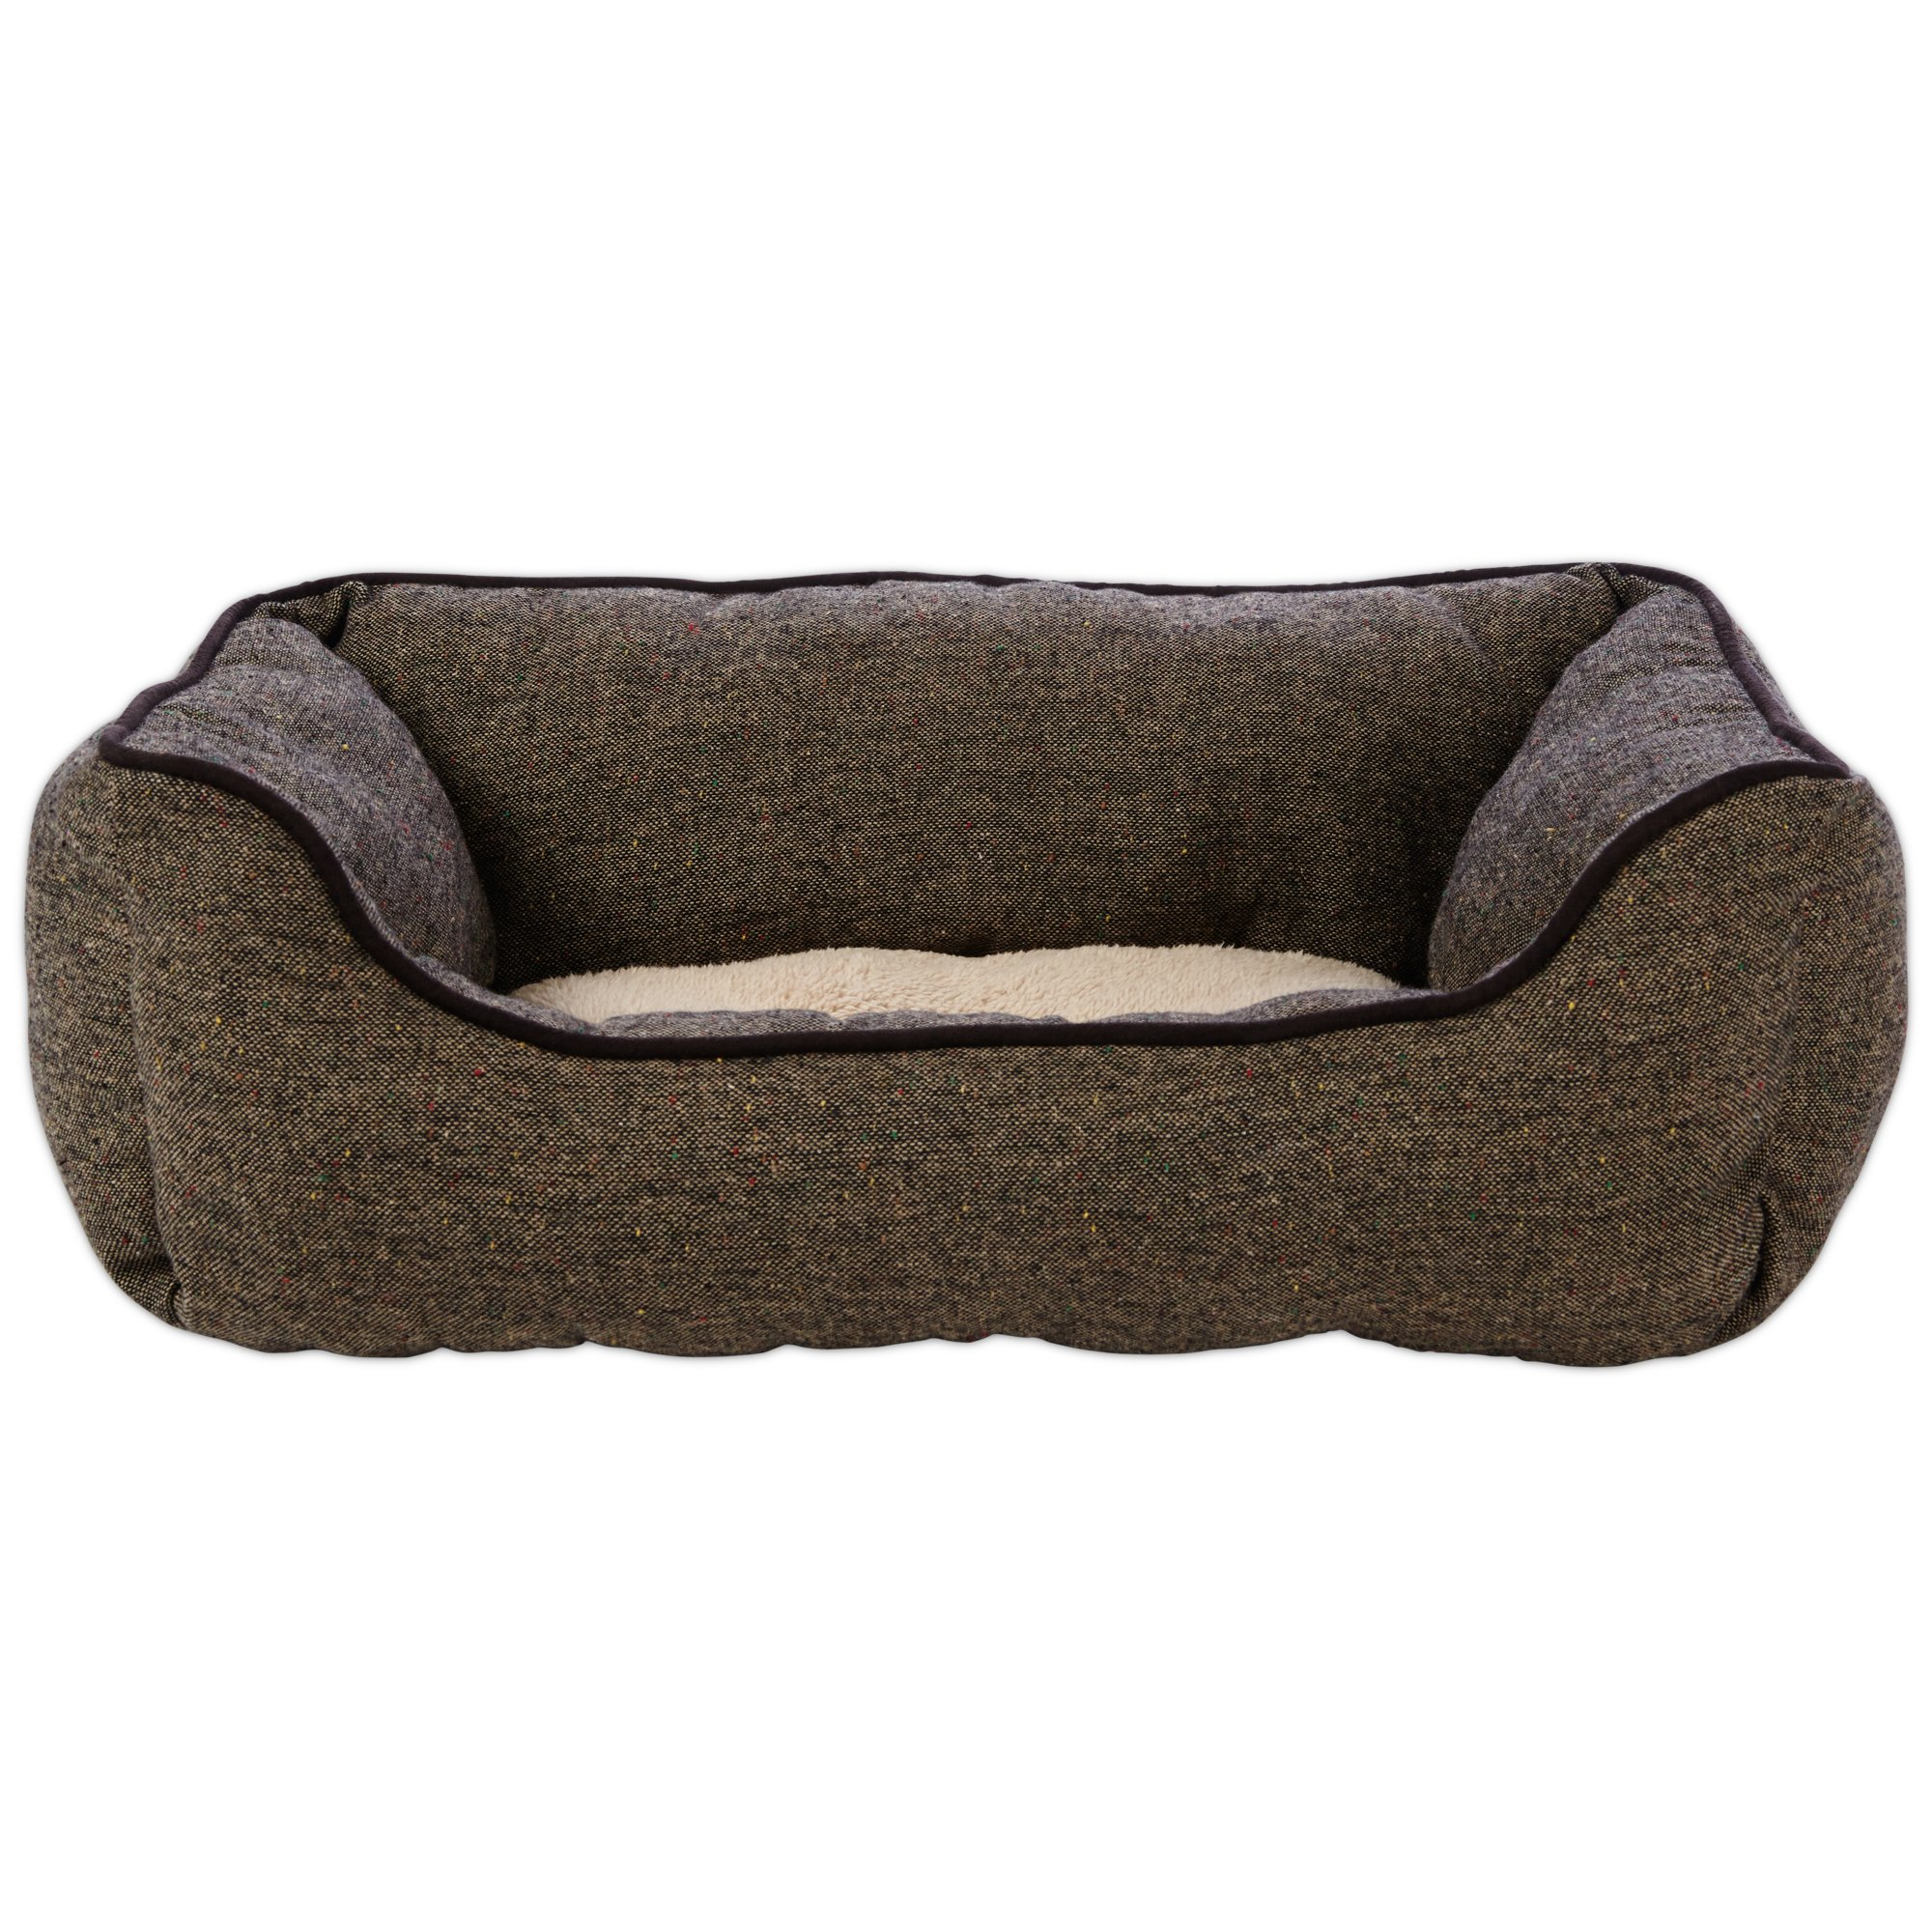 Harmony Nester Dog Bed in Brown Tweed